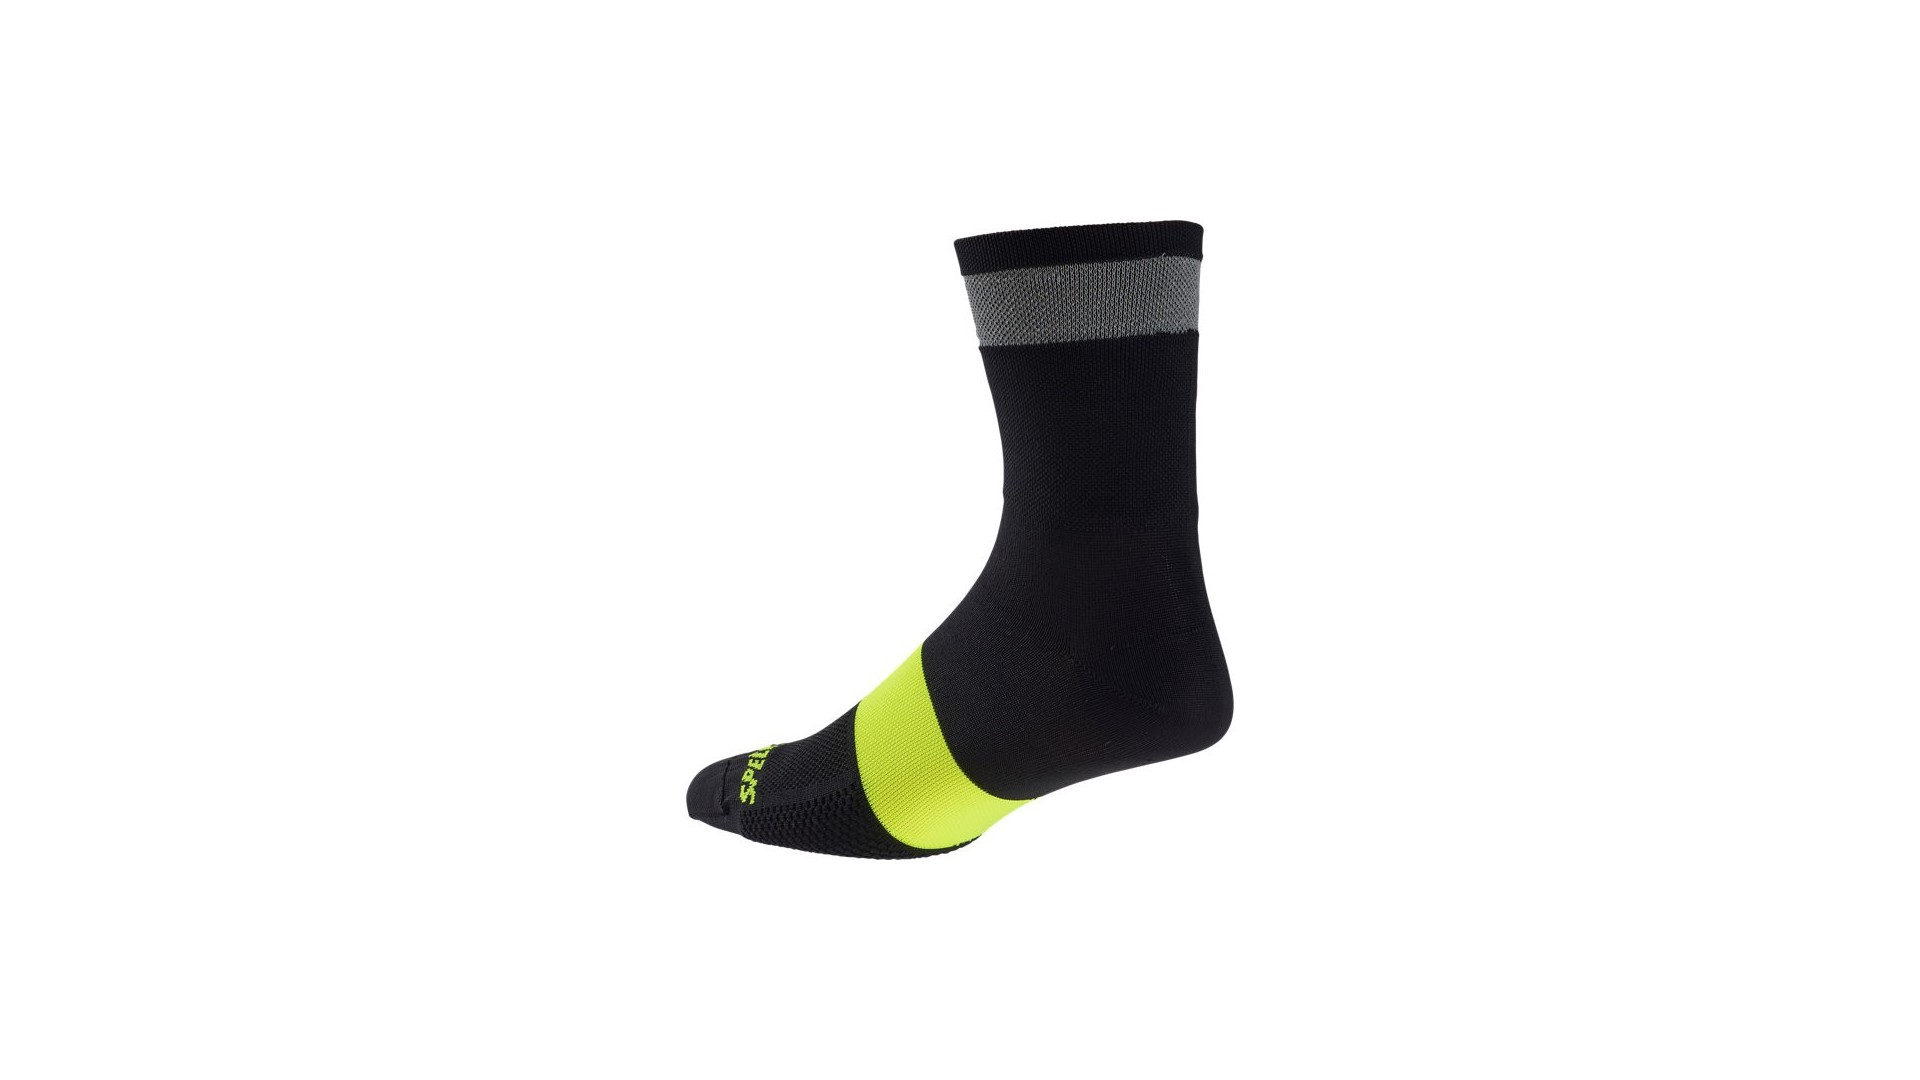 Reflect Tall Calcetines Invierno Specialized Negro 1 IBKBike.es